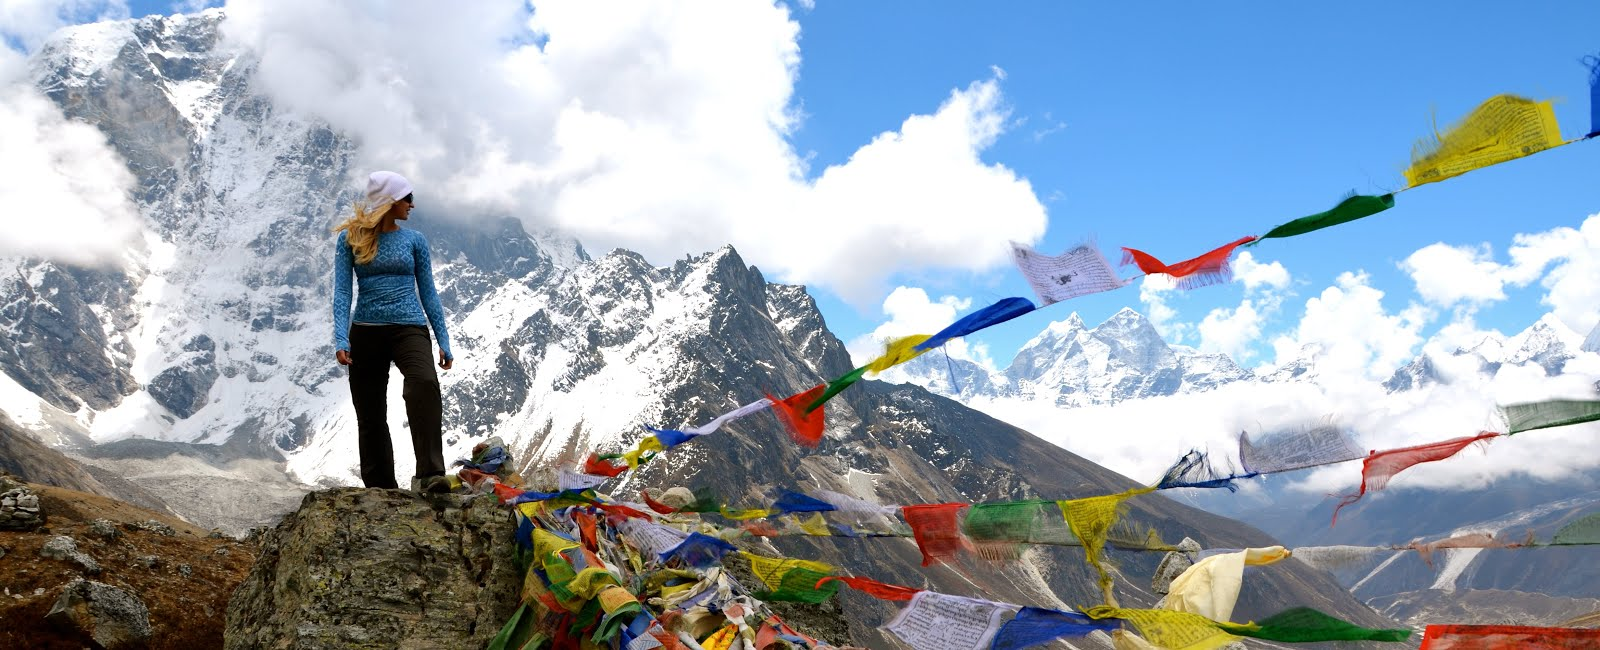 It's my first time to go for  everest base camp trek, it's so amazing journey that I never had before.